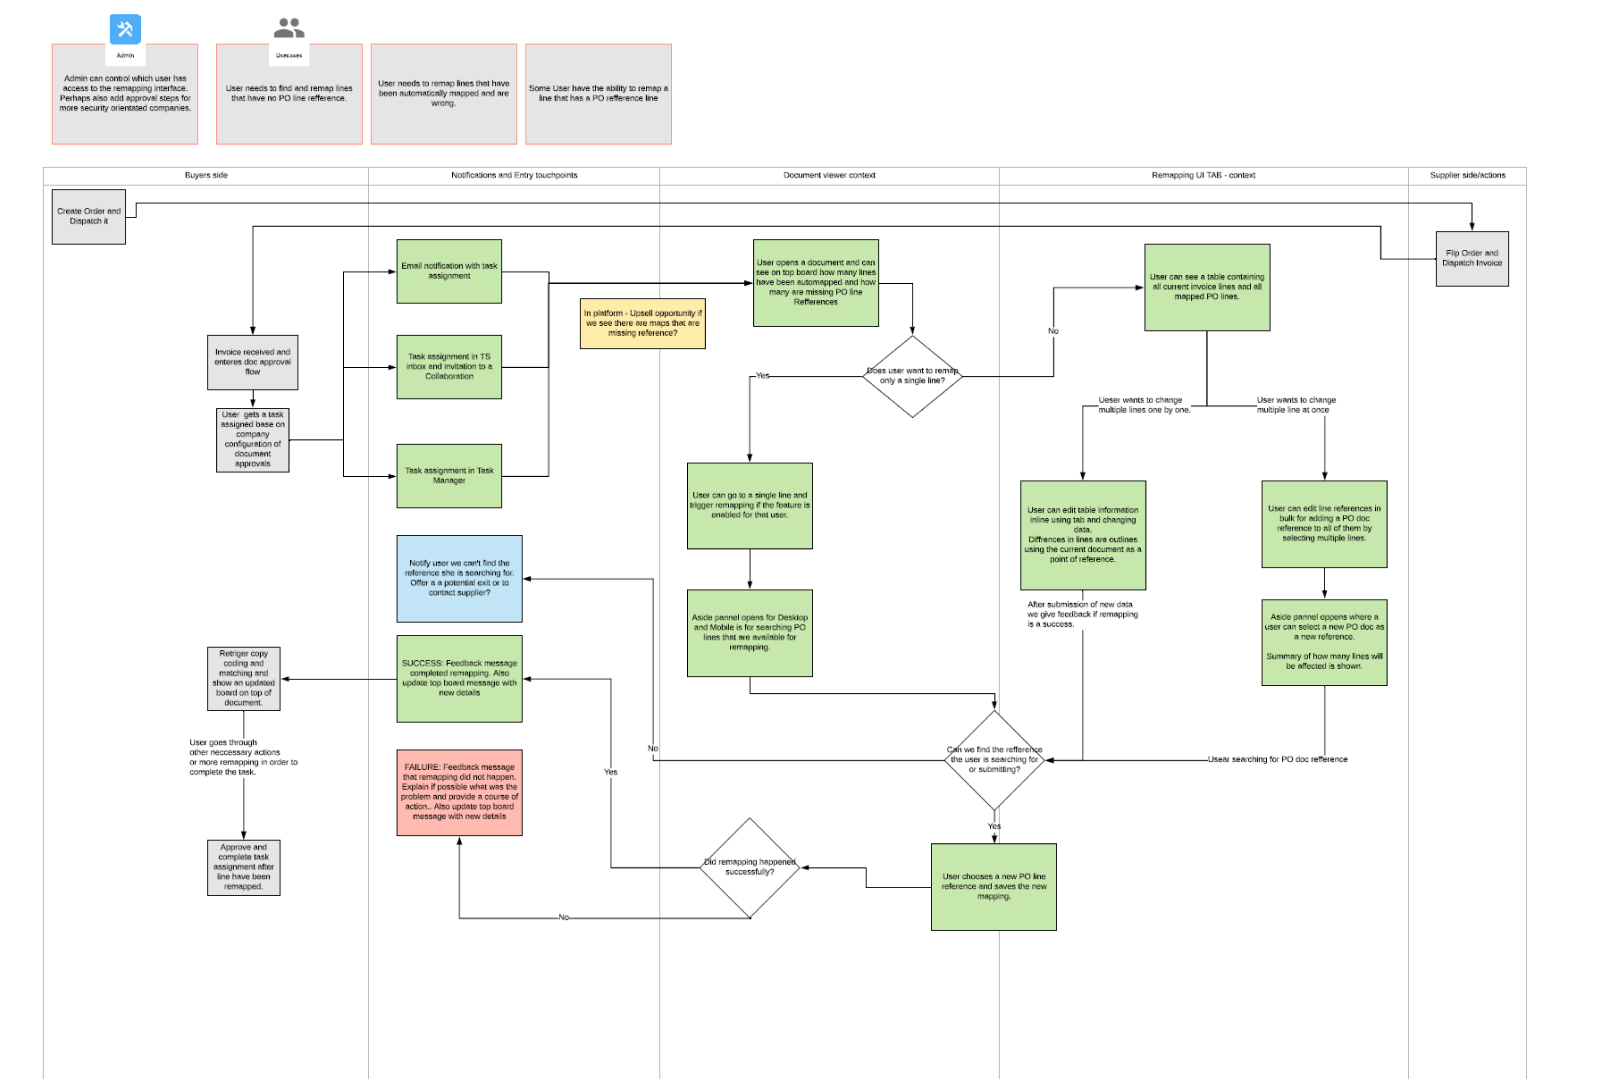 Flowchart for Remapping of lines